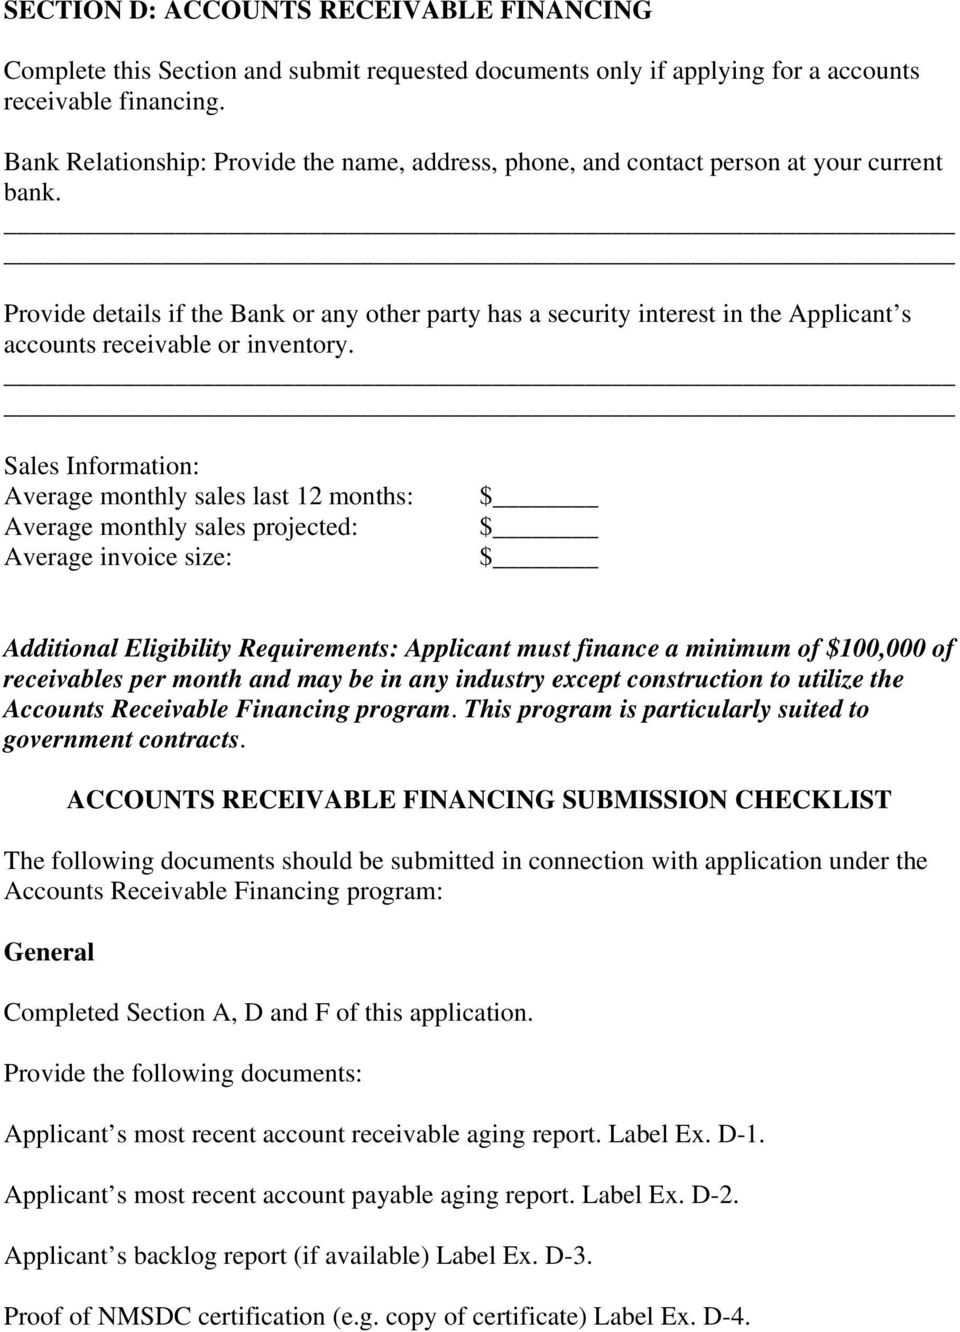 Provide details if the Bank or any other party has a security interest in the Applicant s accounts receivable or inventory.